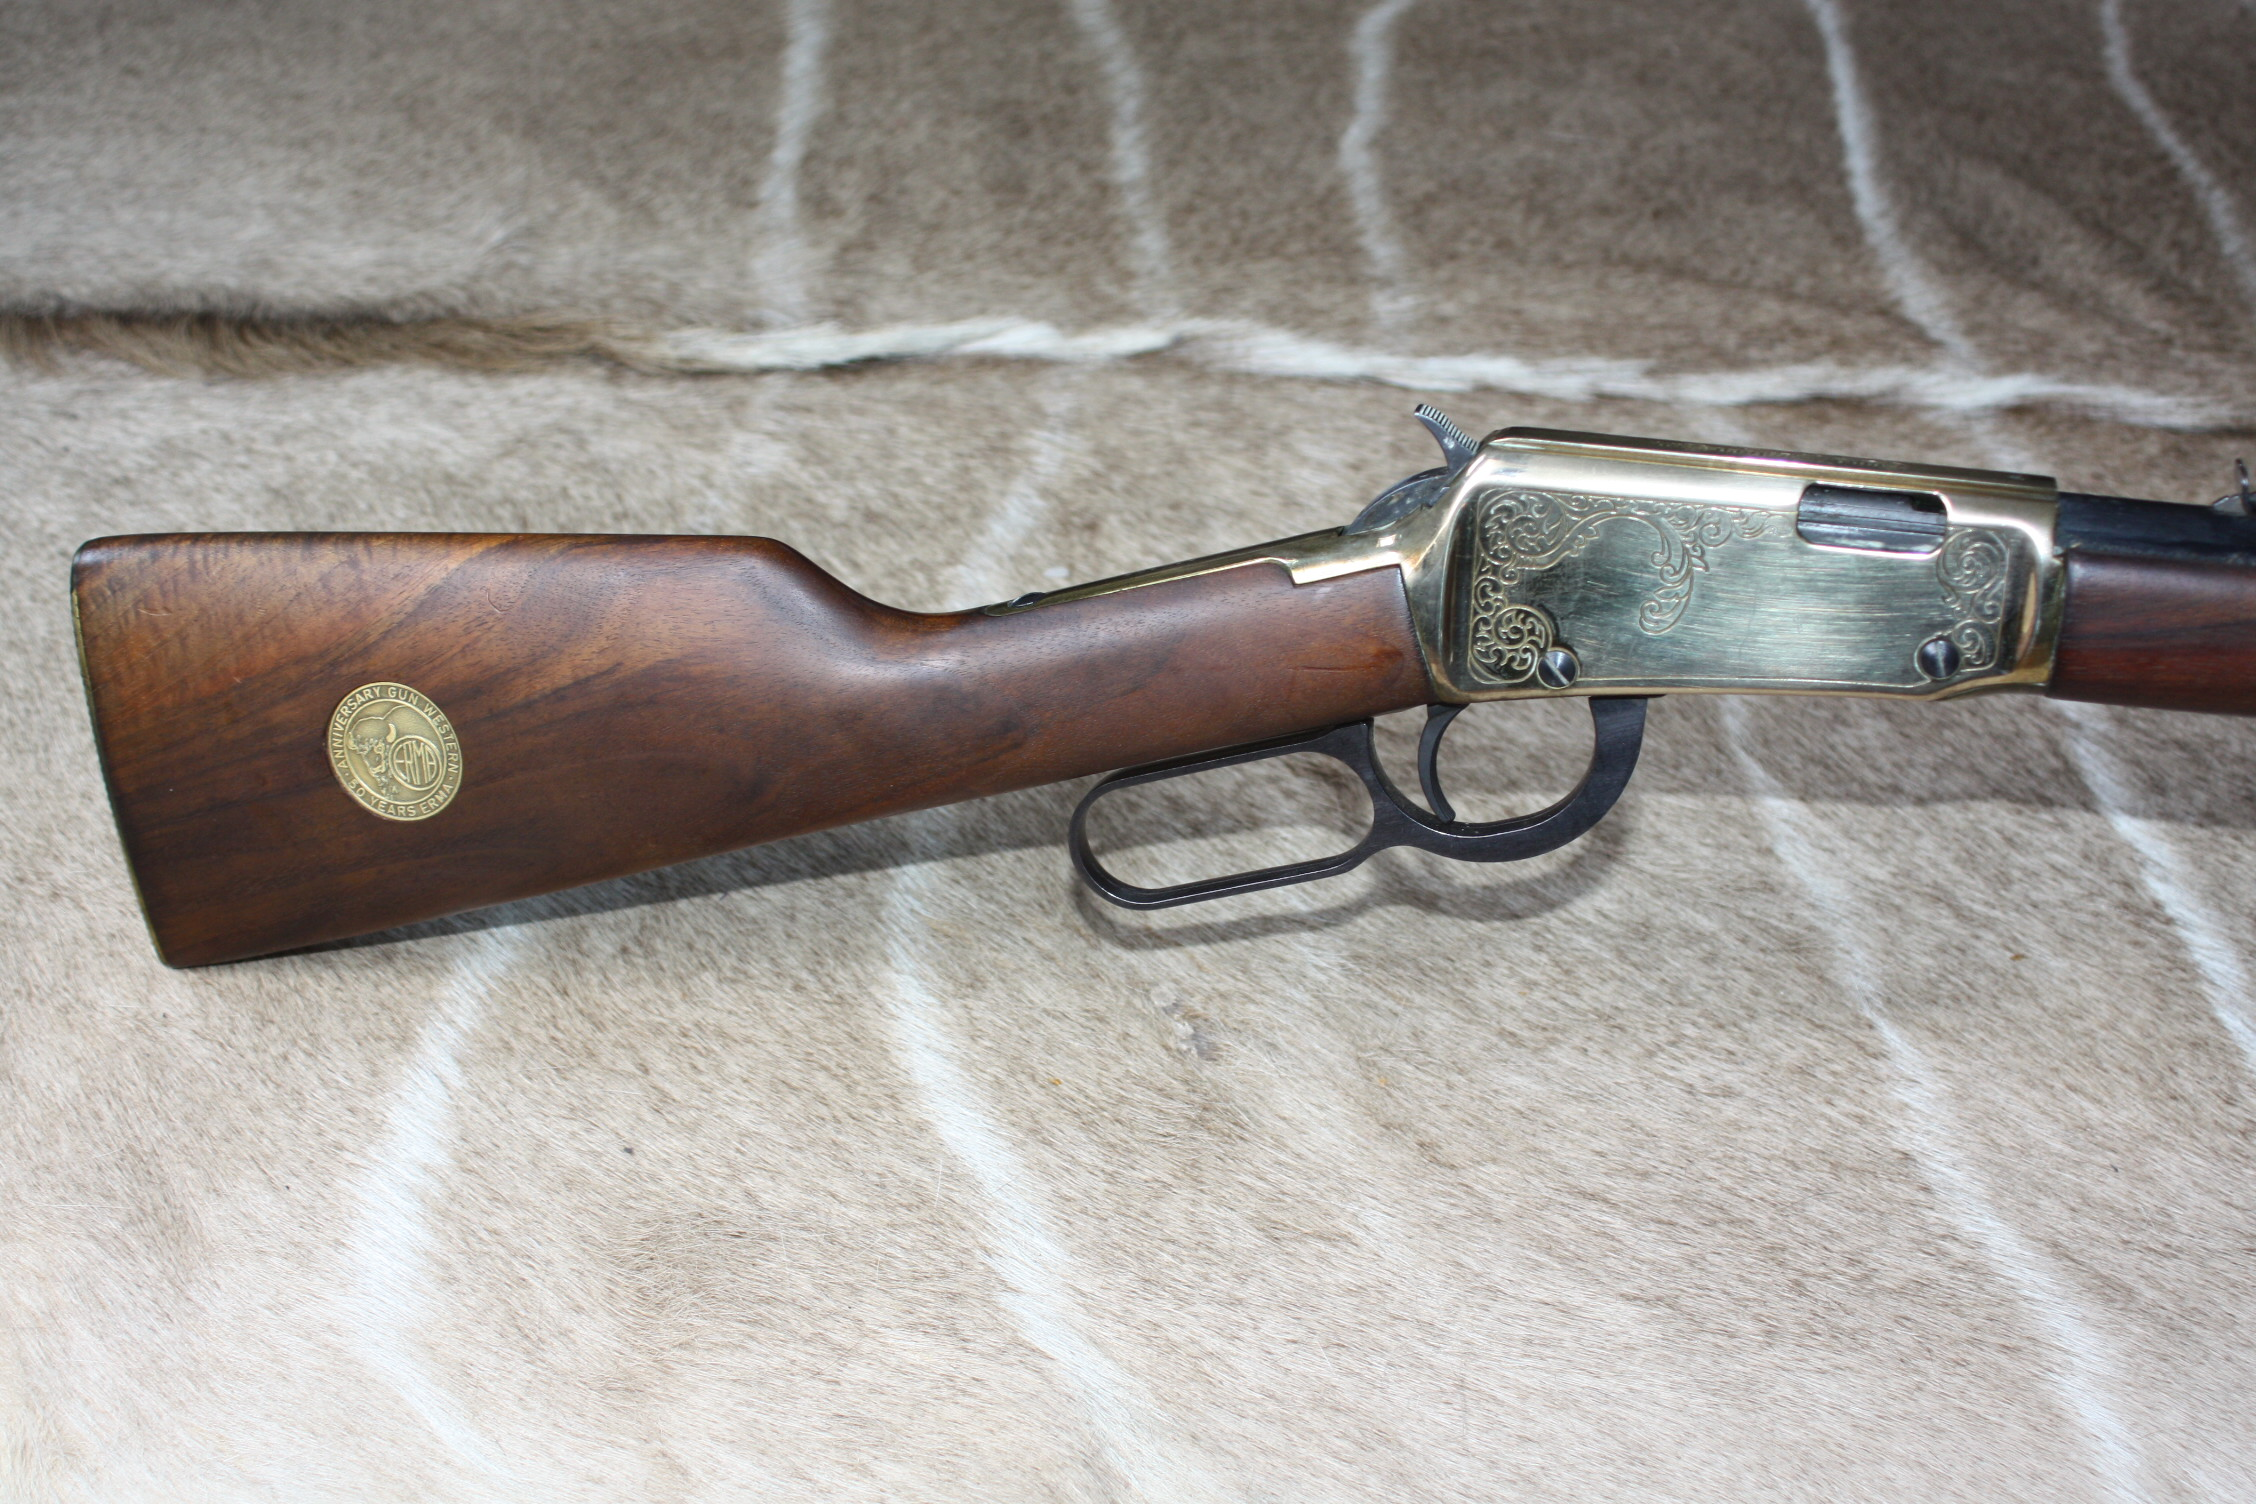 ERMAWERKE 'MOD. EG71W' SPECIAL EDITION 50TH ANNIVERSARY .22LR LEVER-ACTION RIFLE